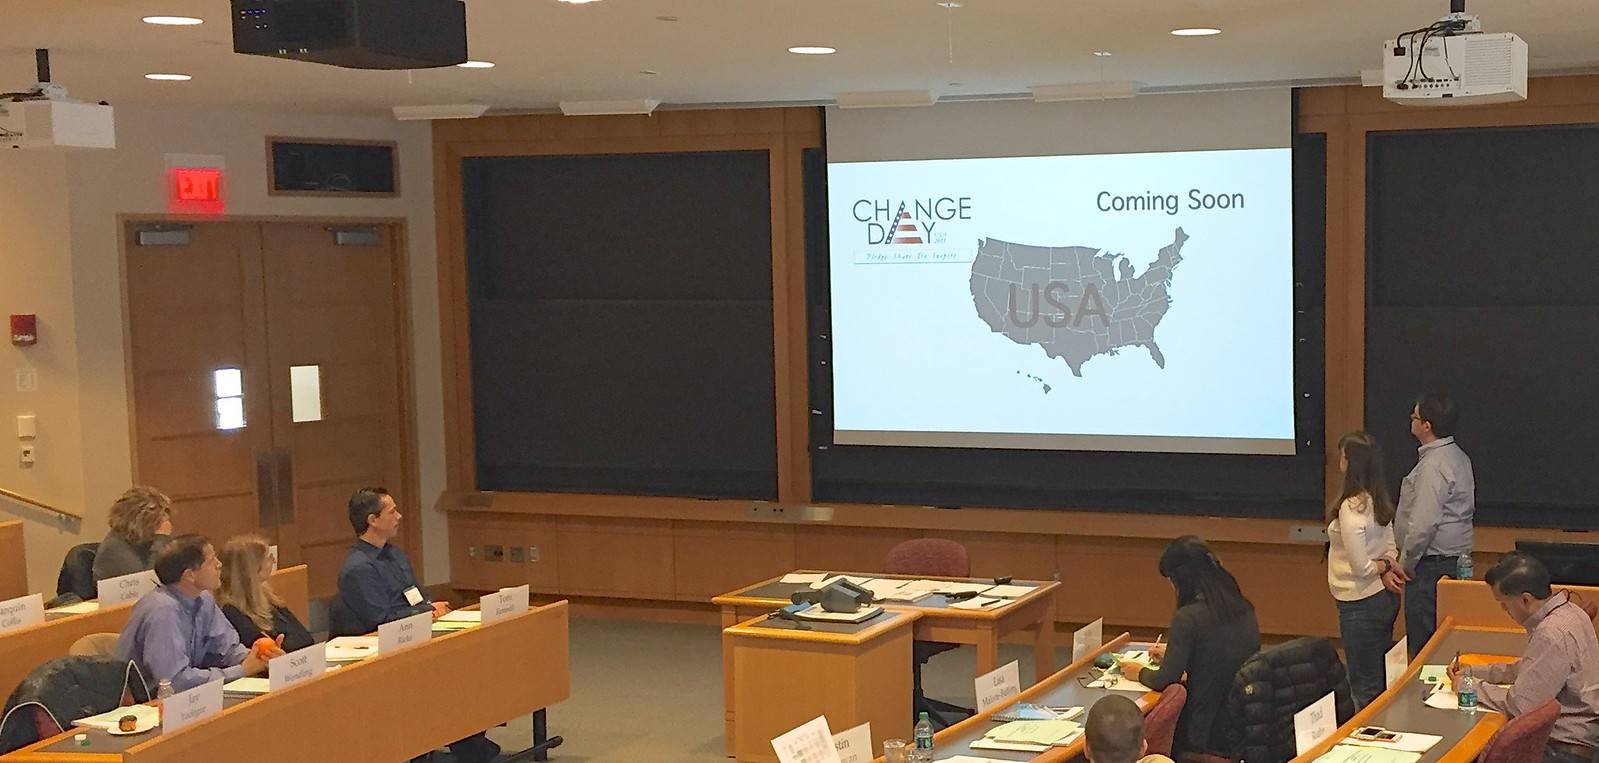 USAChangeDay at Harvard Business School Executive Education - Kaiser Permanente 52526